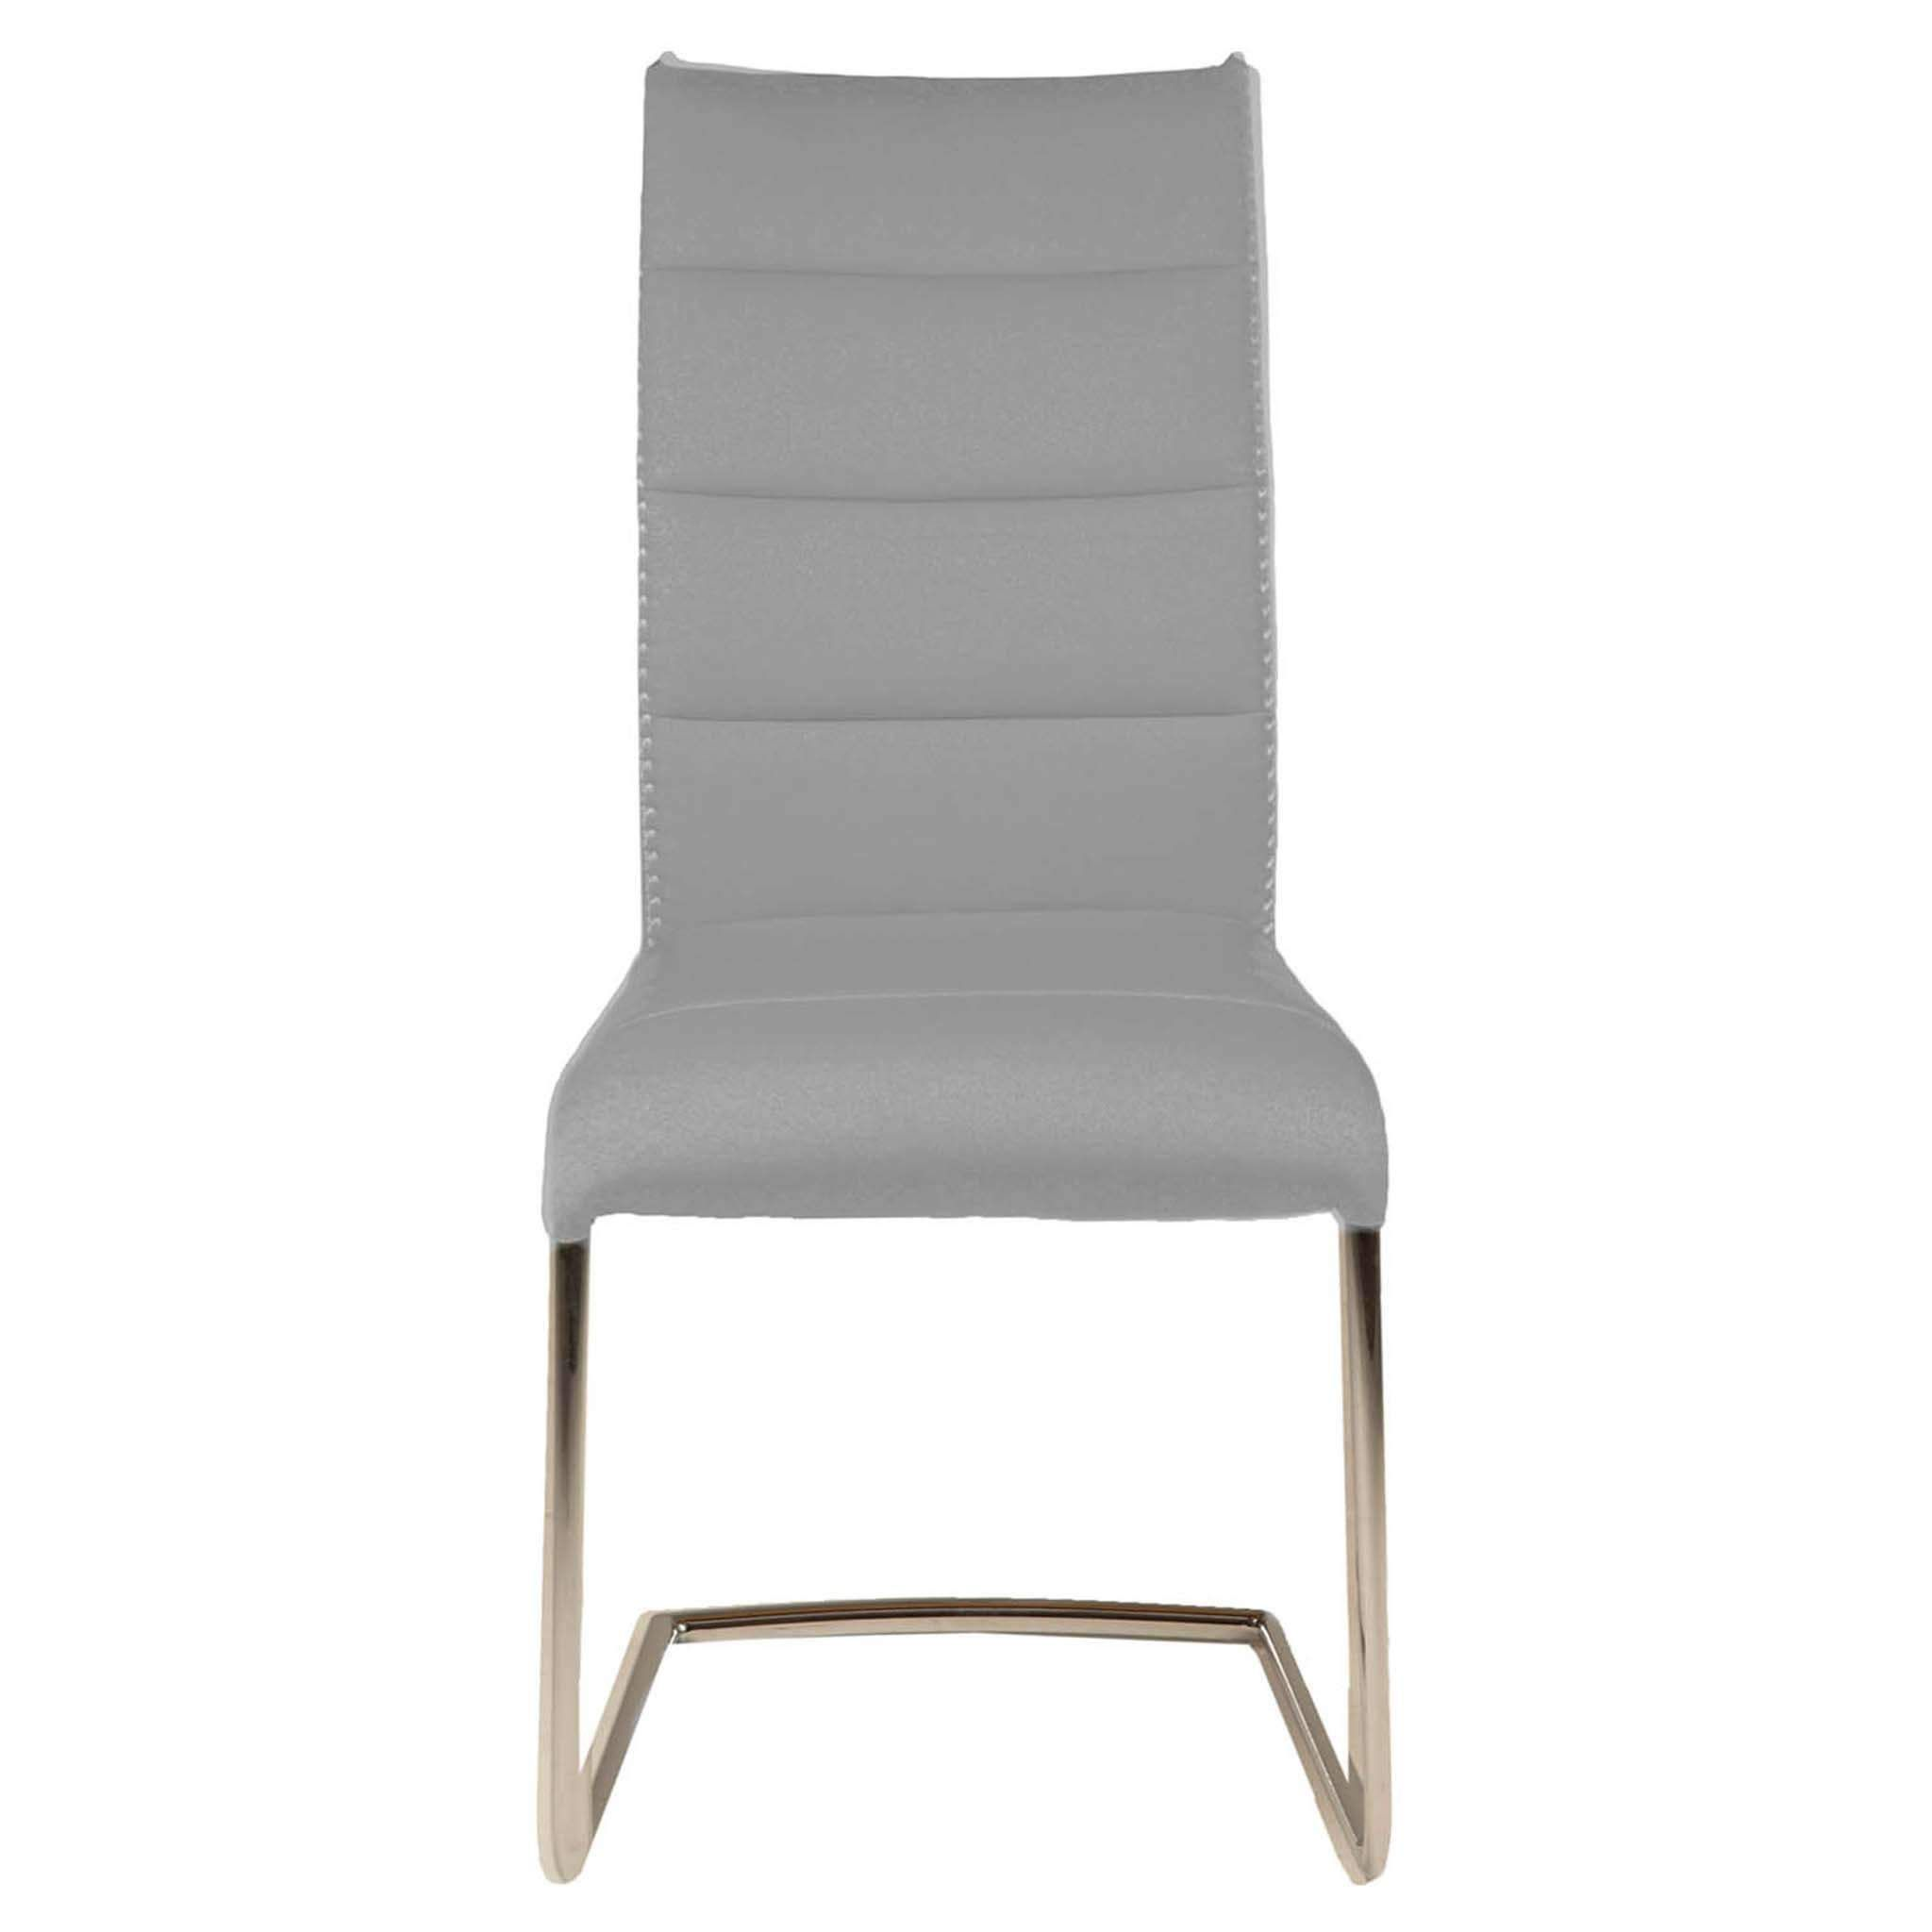 Brilliant Lido Dining Chair Set Of 2 Products Gray Dining Chairs Download Free Architecture Designs Grimeyleaguecom